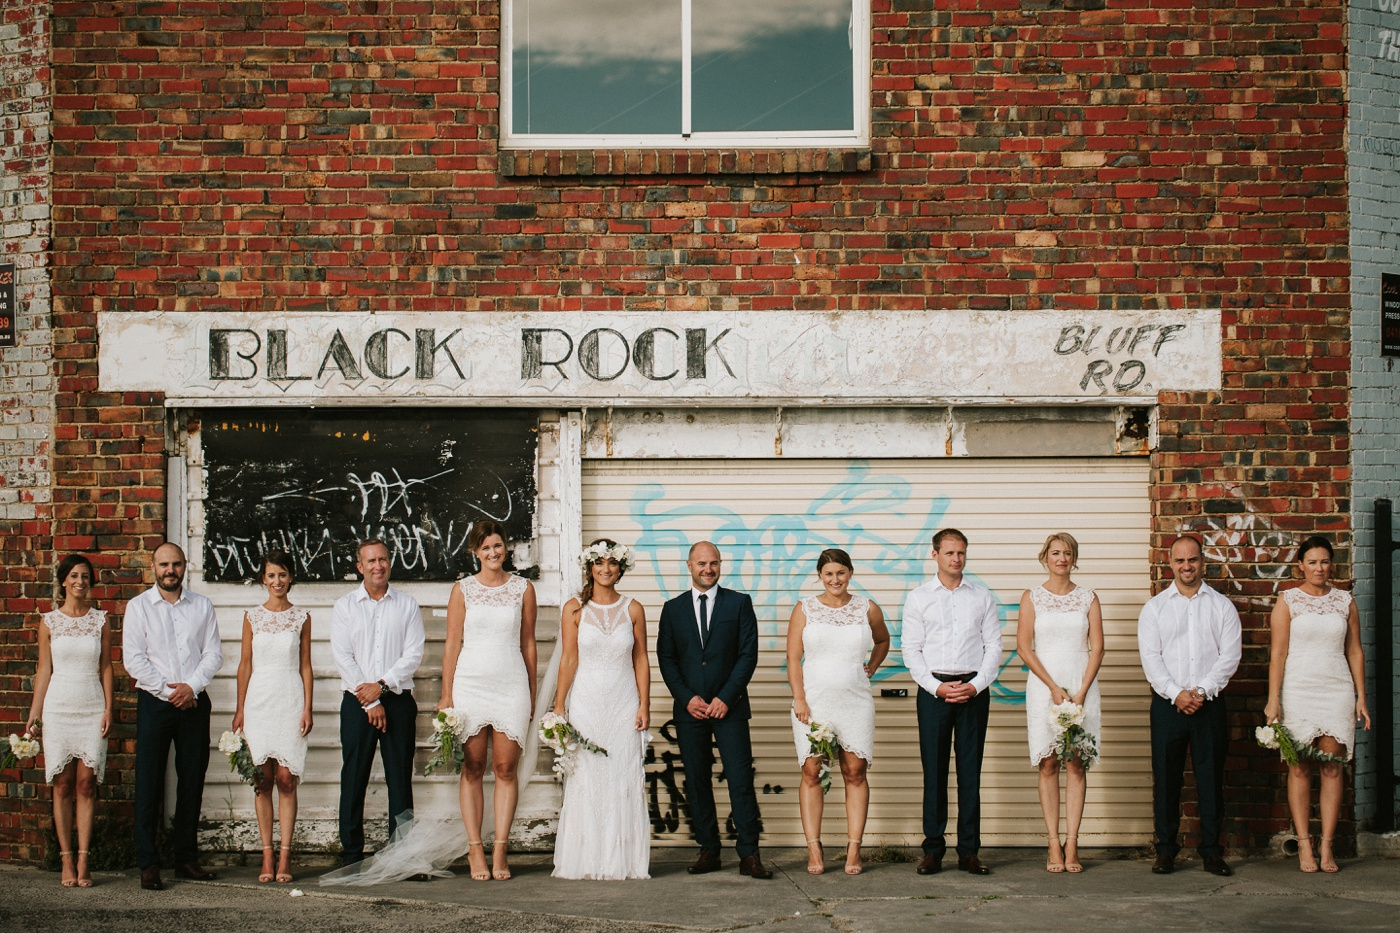 Sam&Daniel-Melbourne-Southside-Informal-Chic-Fun-Black-Rock-Wedding_51